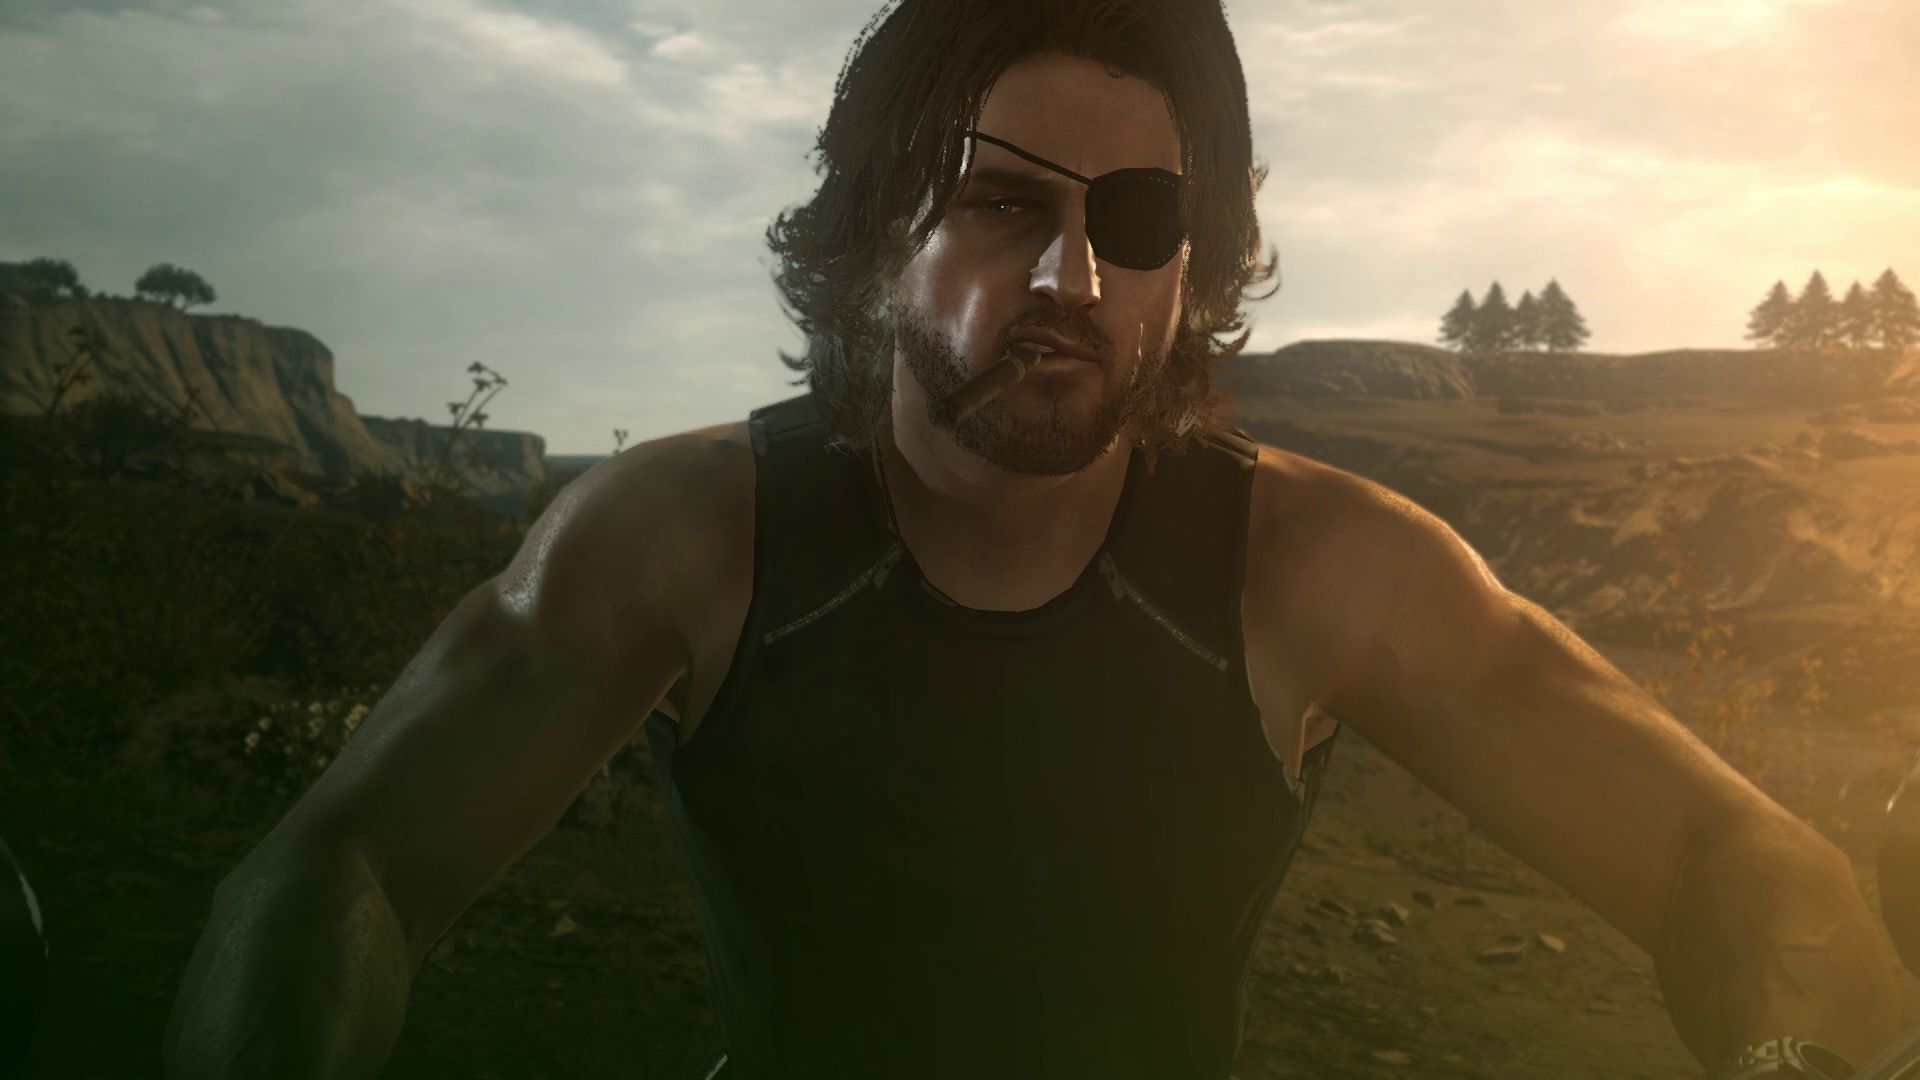 This Metal Gear Solid 5: The Phantom Pain mod lets you